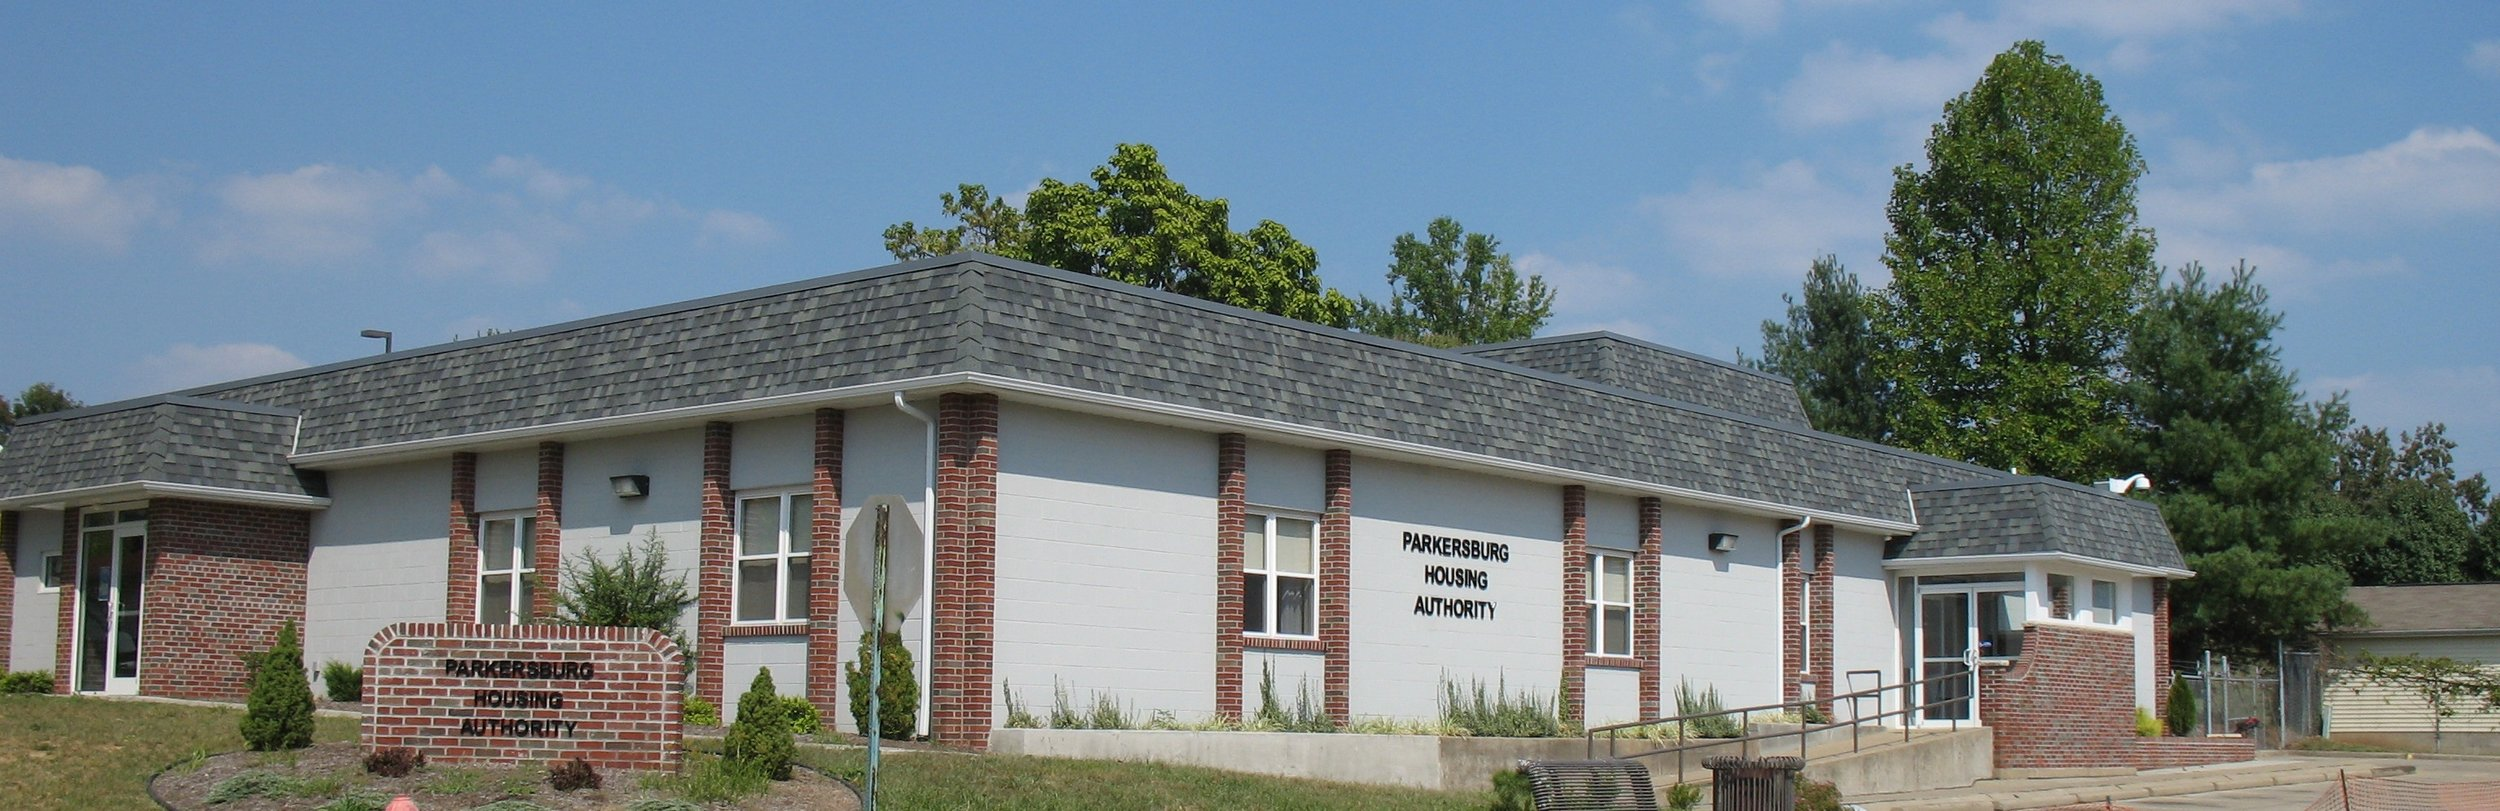 Parkersburg Housing Authority office WV.JPG